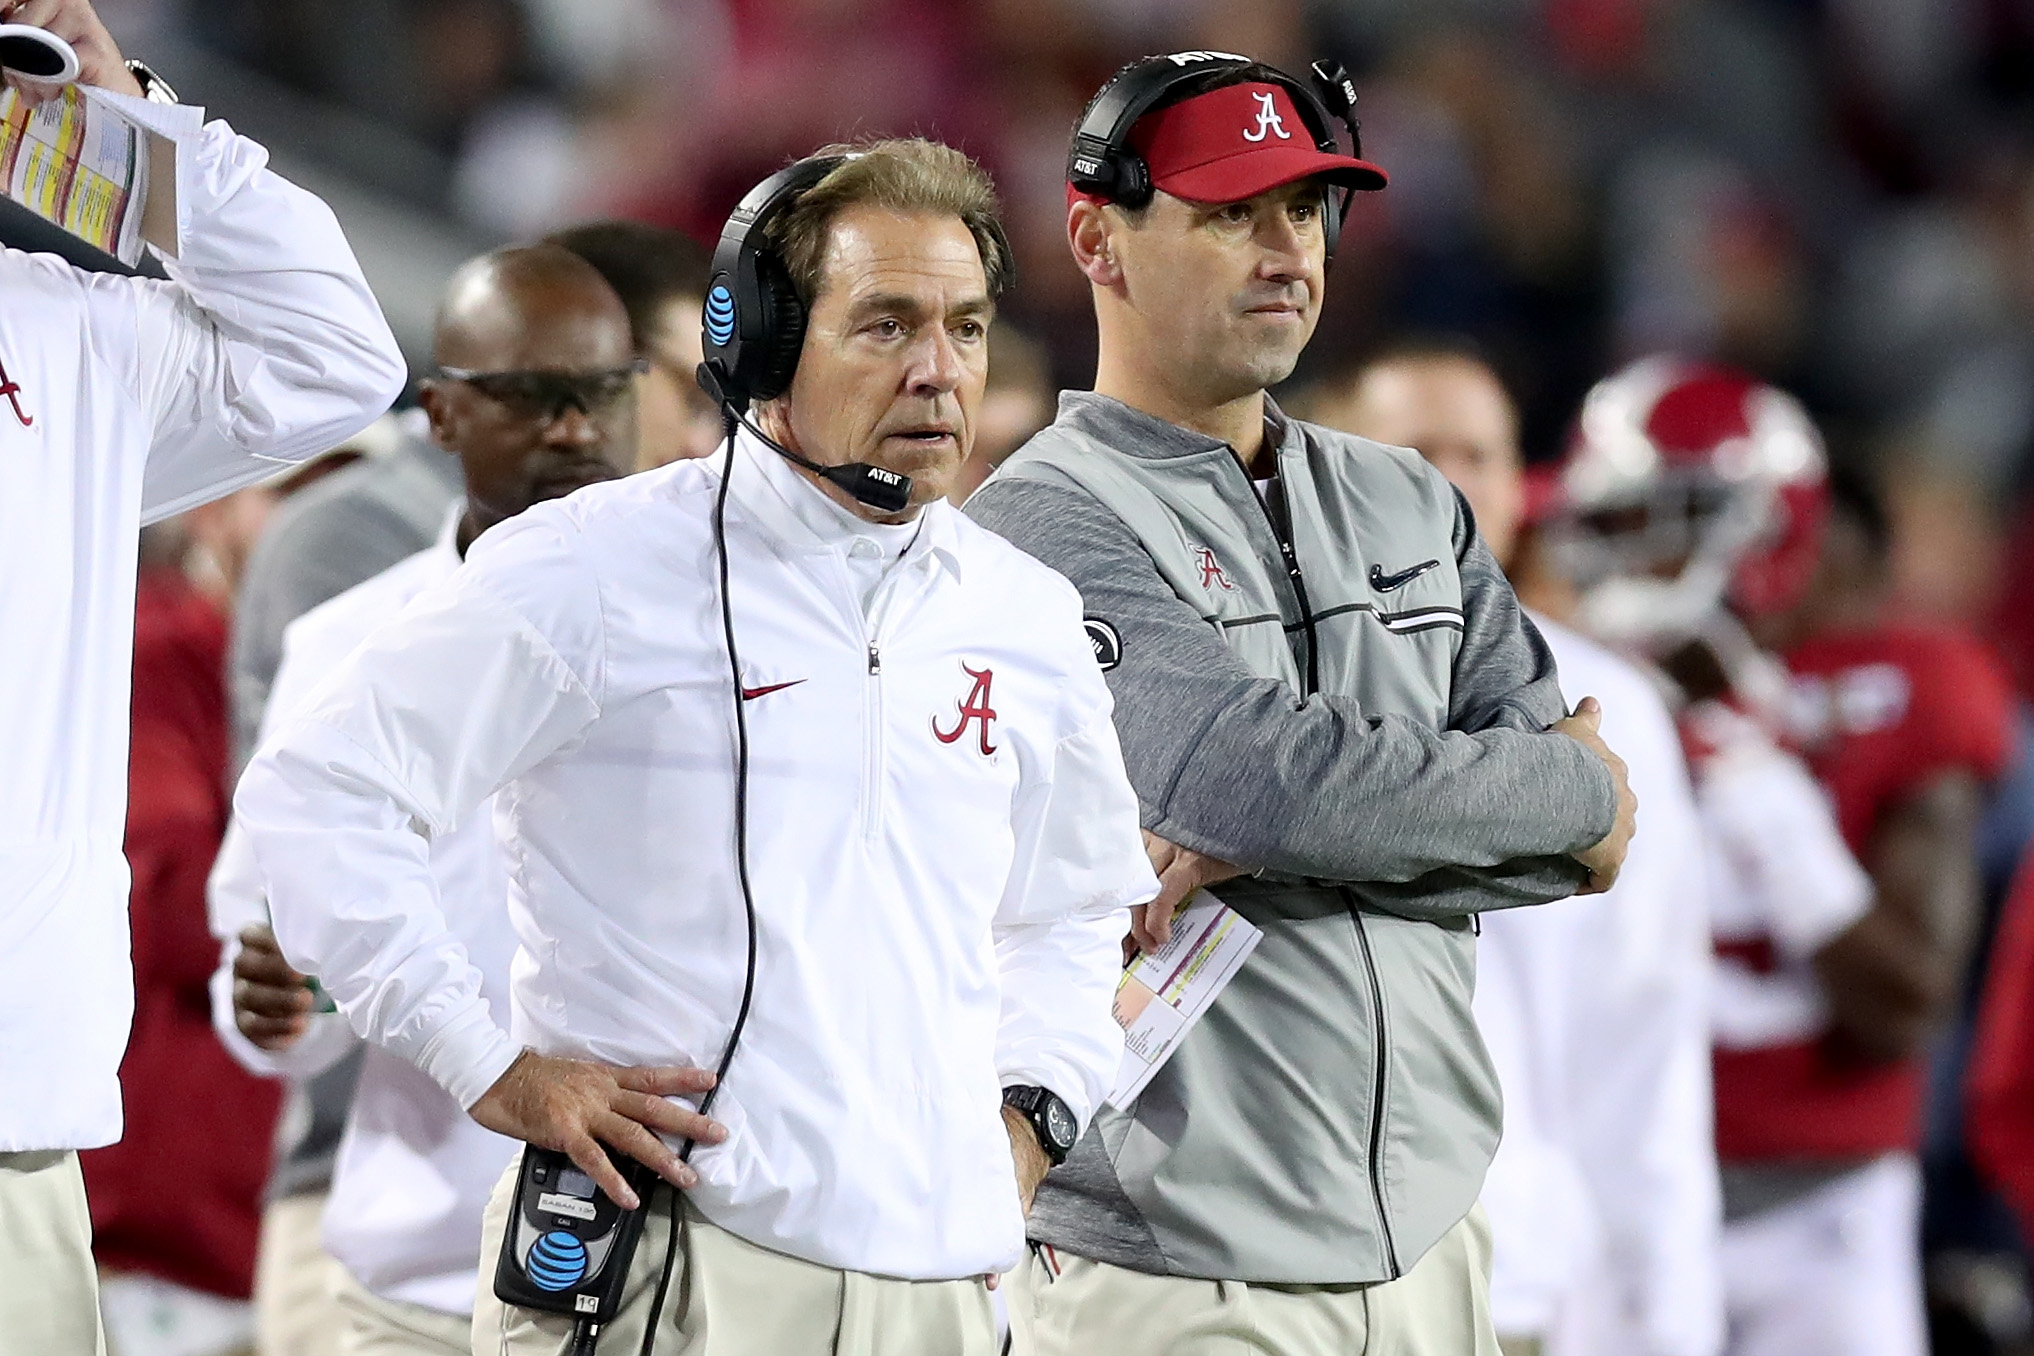 buffalo every day should be saturday never forget the oddest couple of all nick saban and lane kiffin coexisted for three years all peace and reconciliation is possible